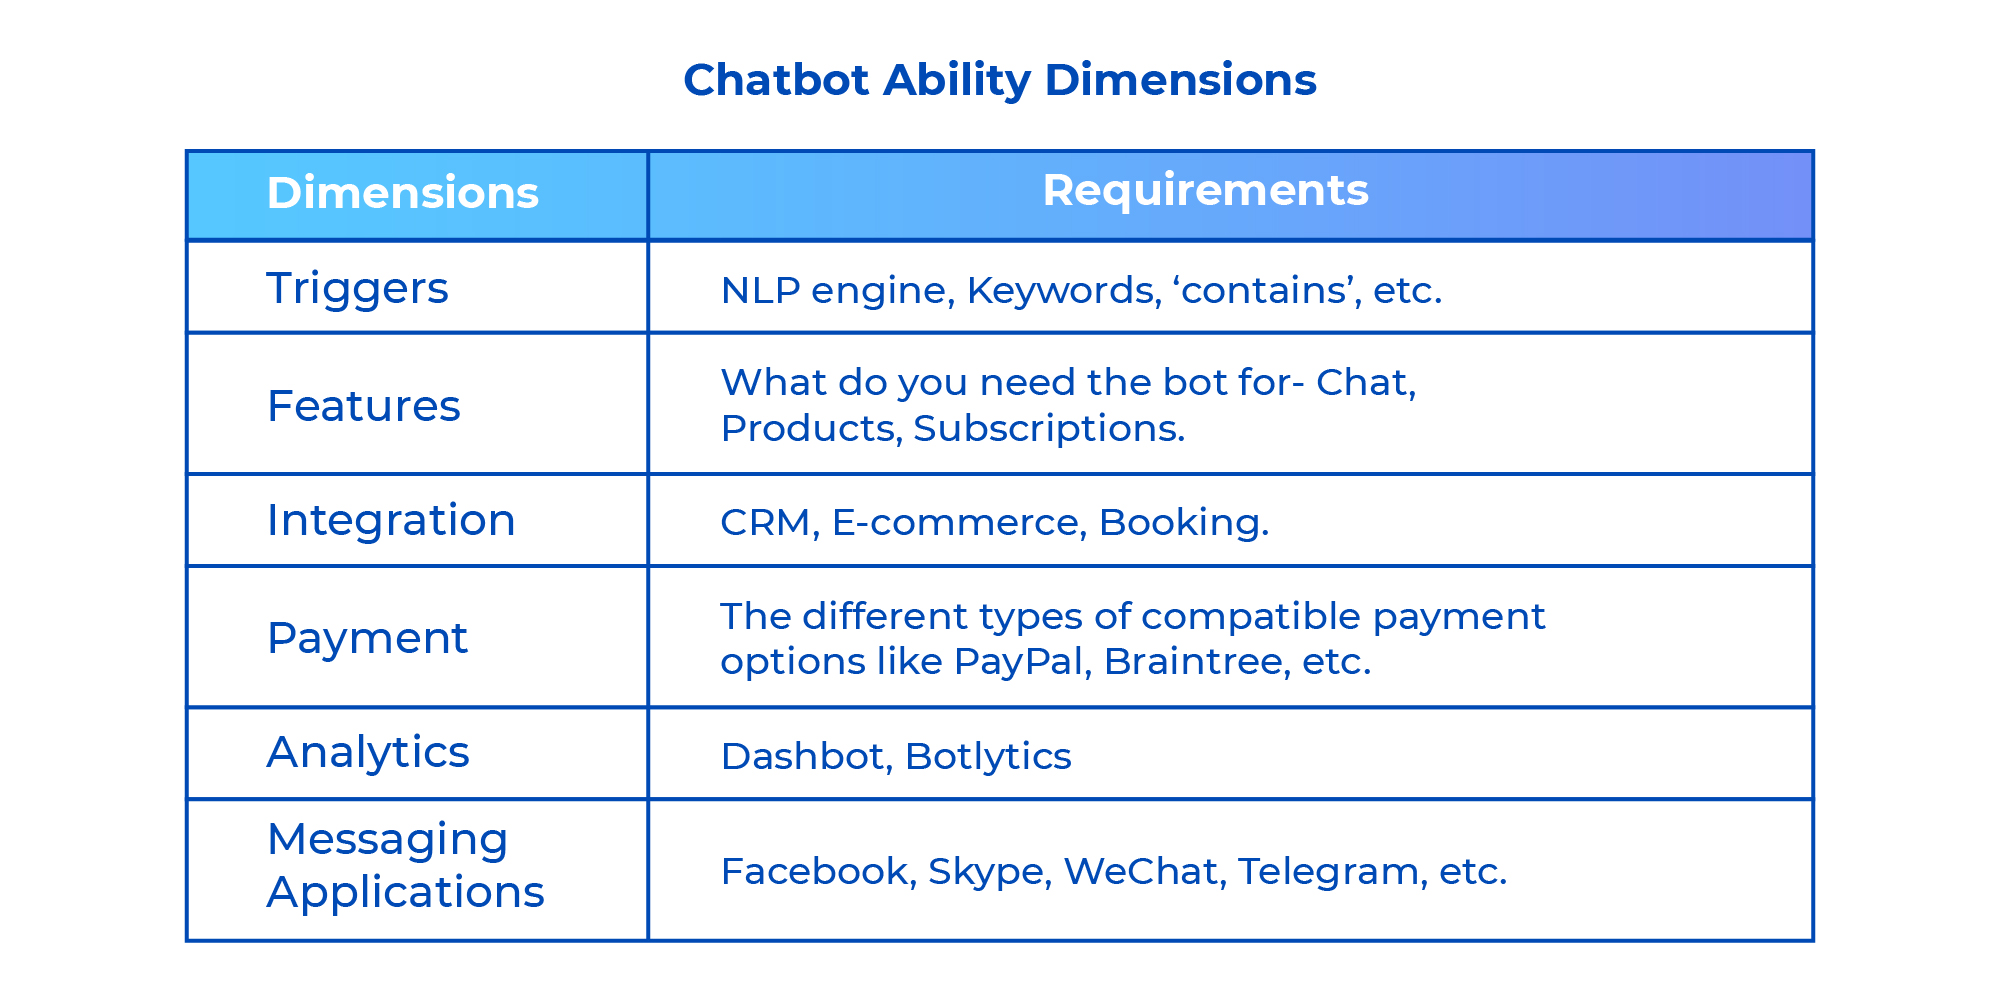 Chatbot Ability